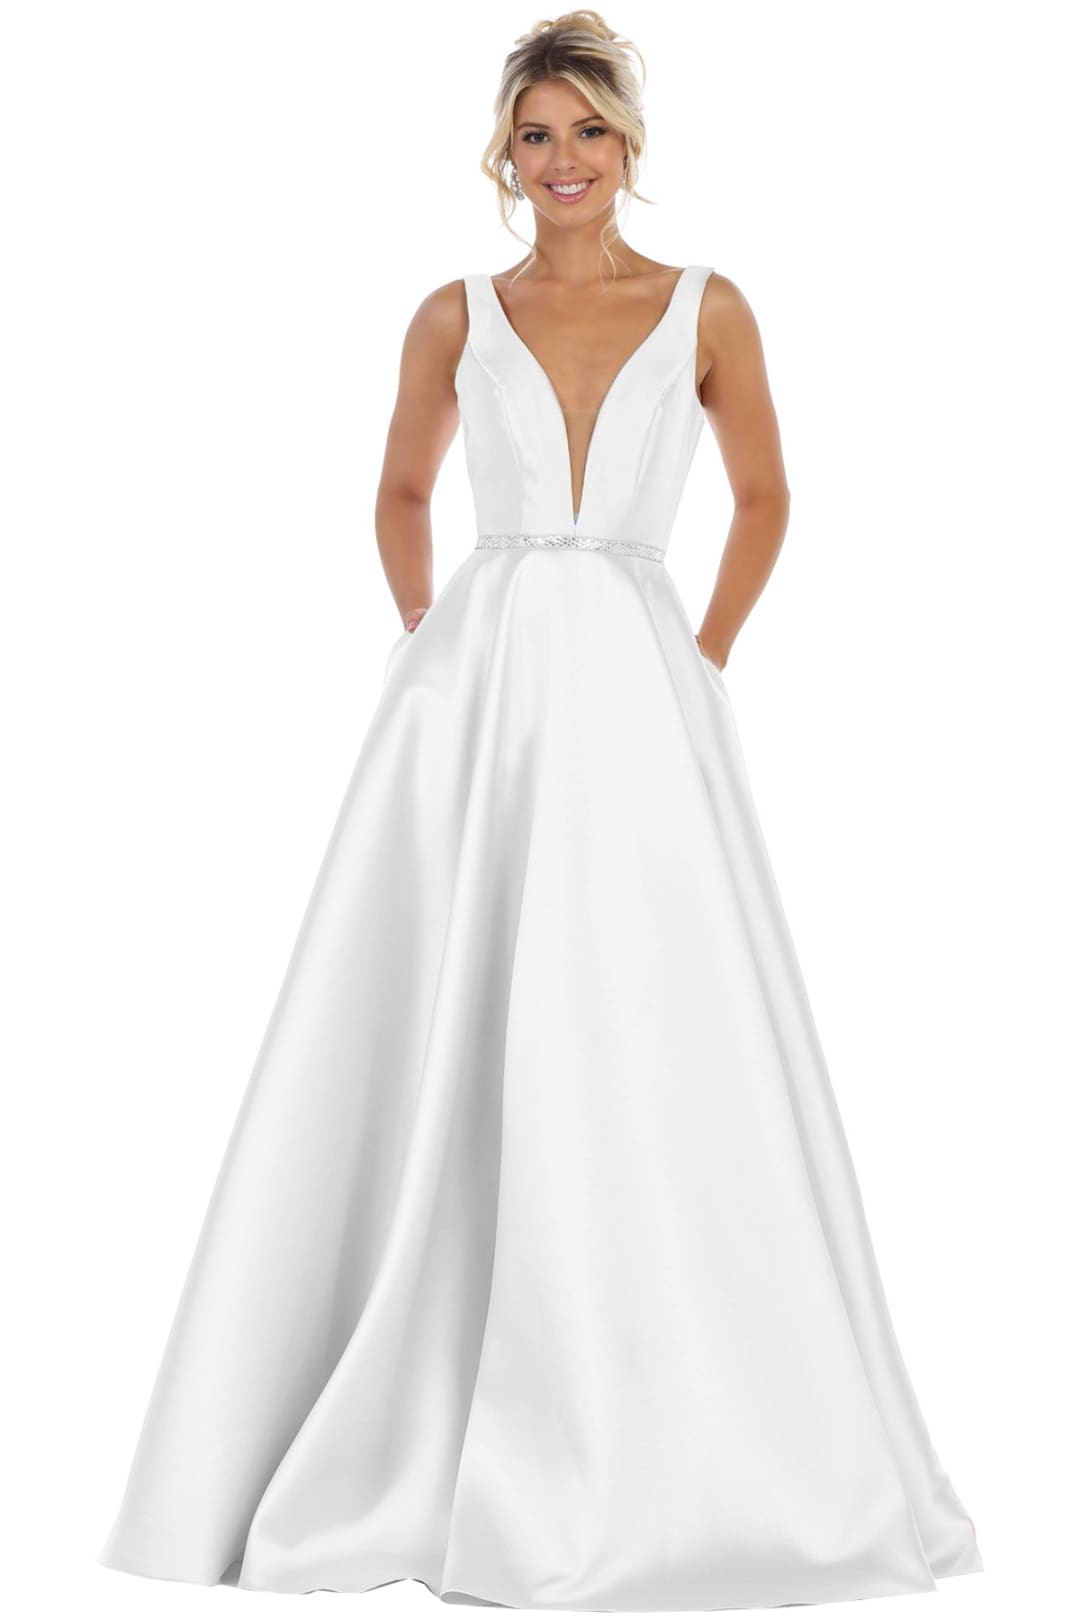 Simple Sleeveless Wedding Gown Dress - Ivory / 4